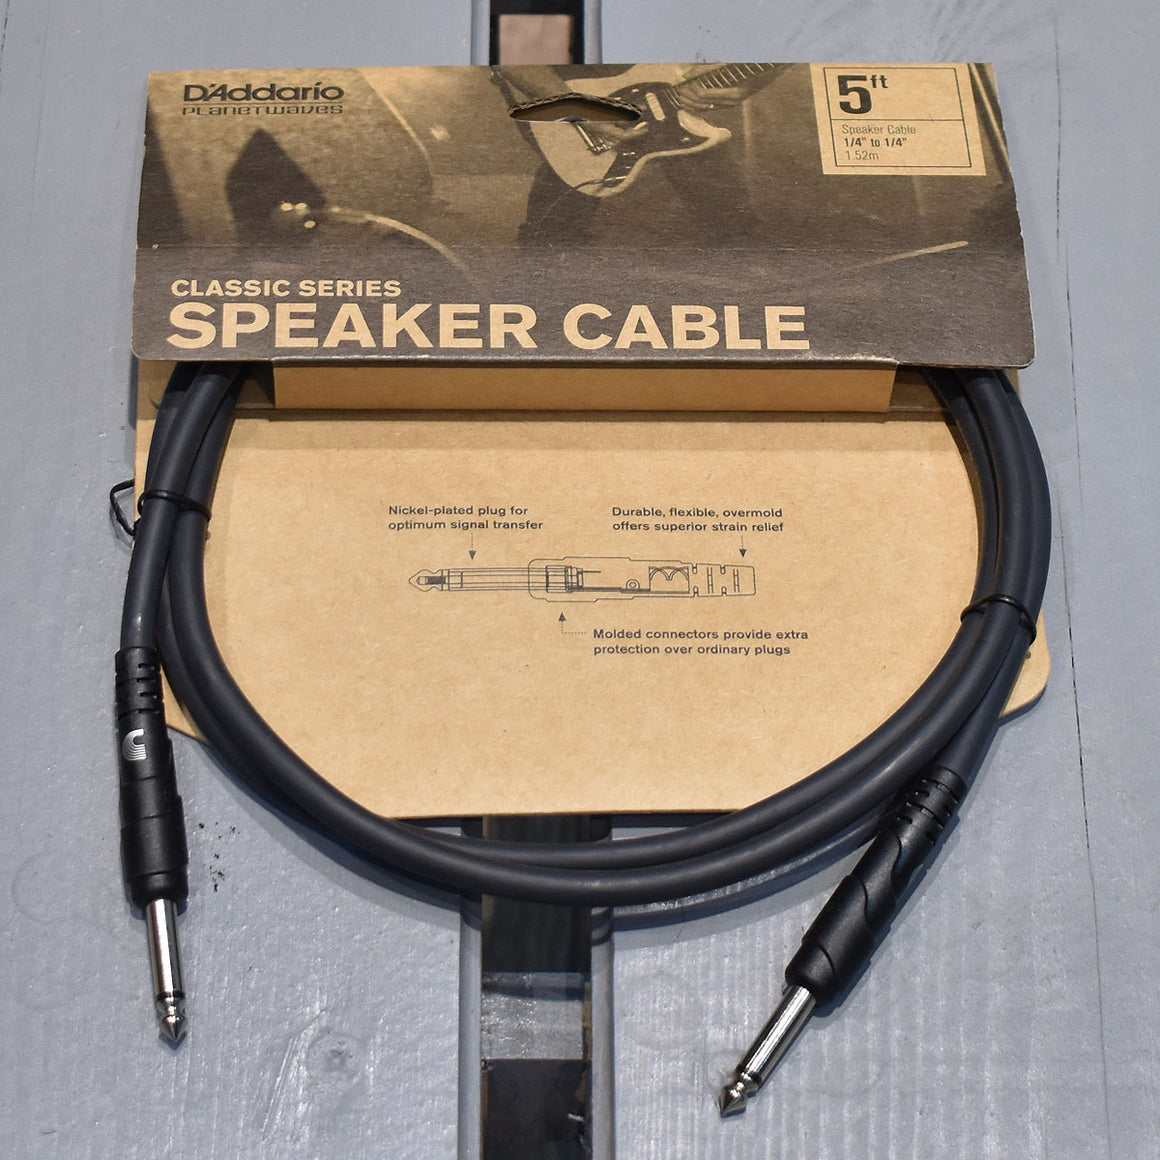 D'Addario Classic Series 5ft Speaker Cable